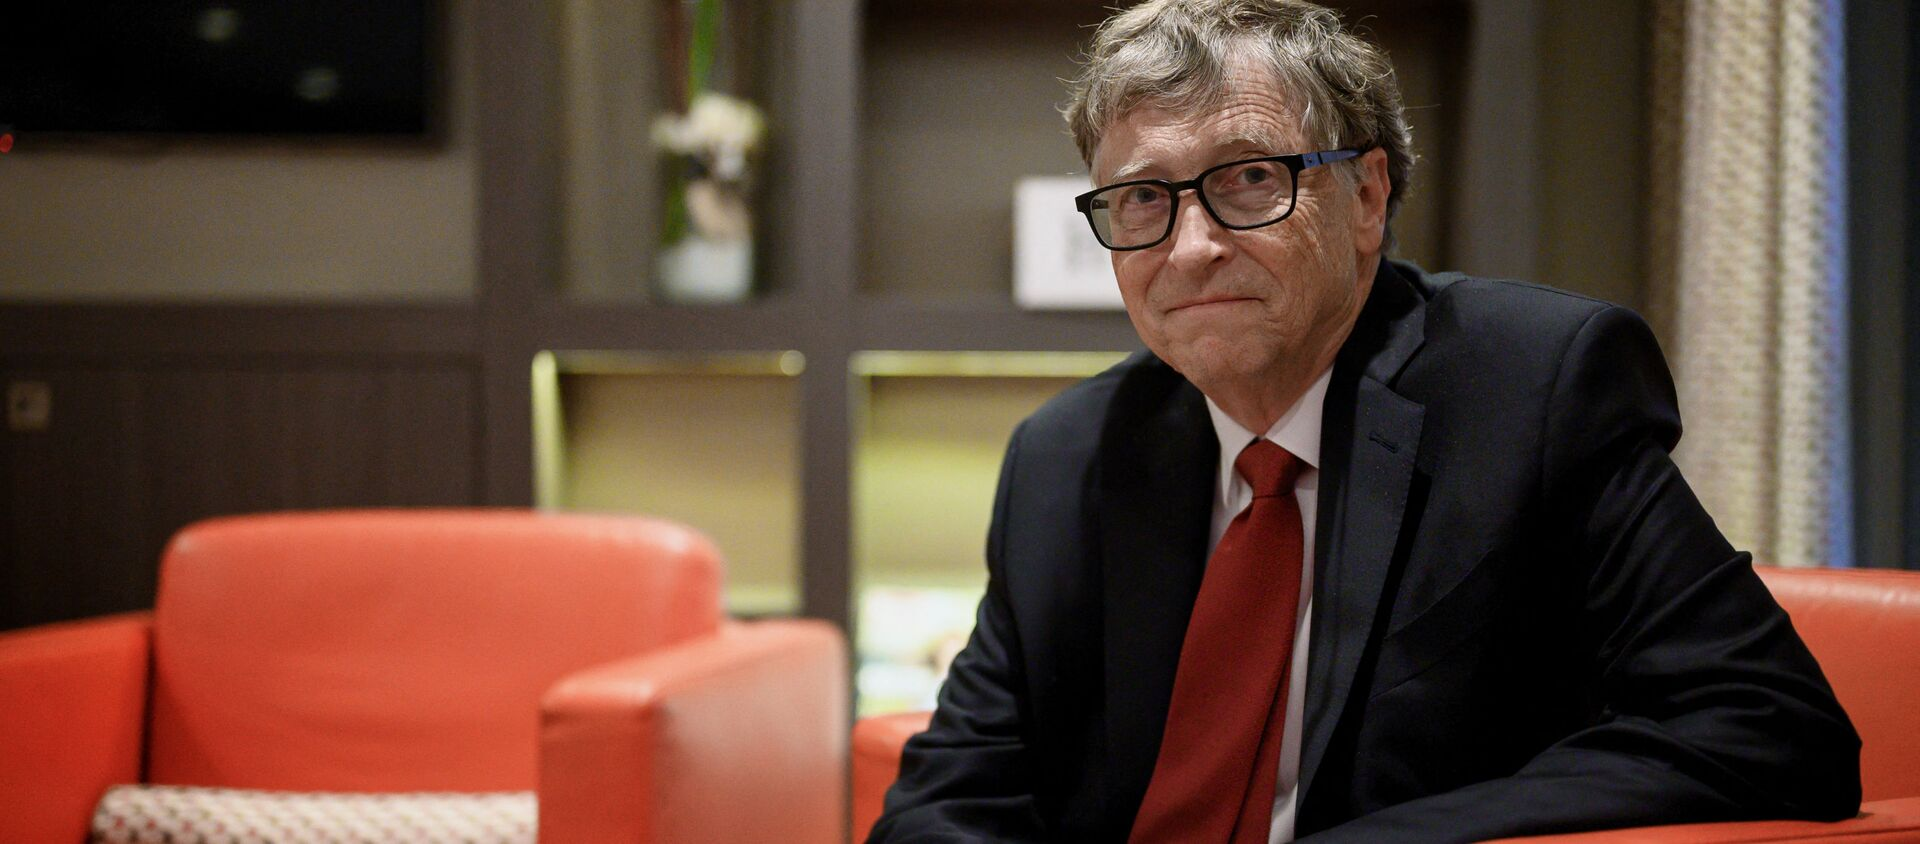 US Microsoft founder, Co-Chairman of the Bill & Melinda Gates Foundation, Bill Gates, poses for a picture on October 9, 2019, in Lyon, central eastern France, during the funding conference of Global Fund to Fight AIDS, Tuberculosis and Malaria.  - Sputnik International, 1920, 30.08.2021